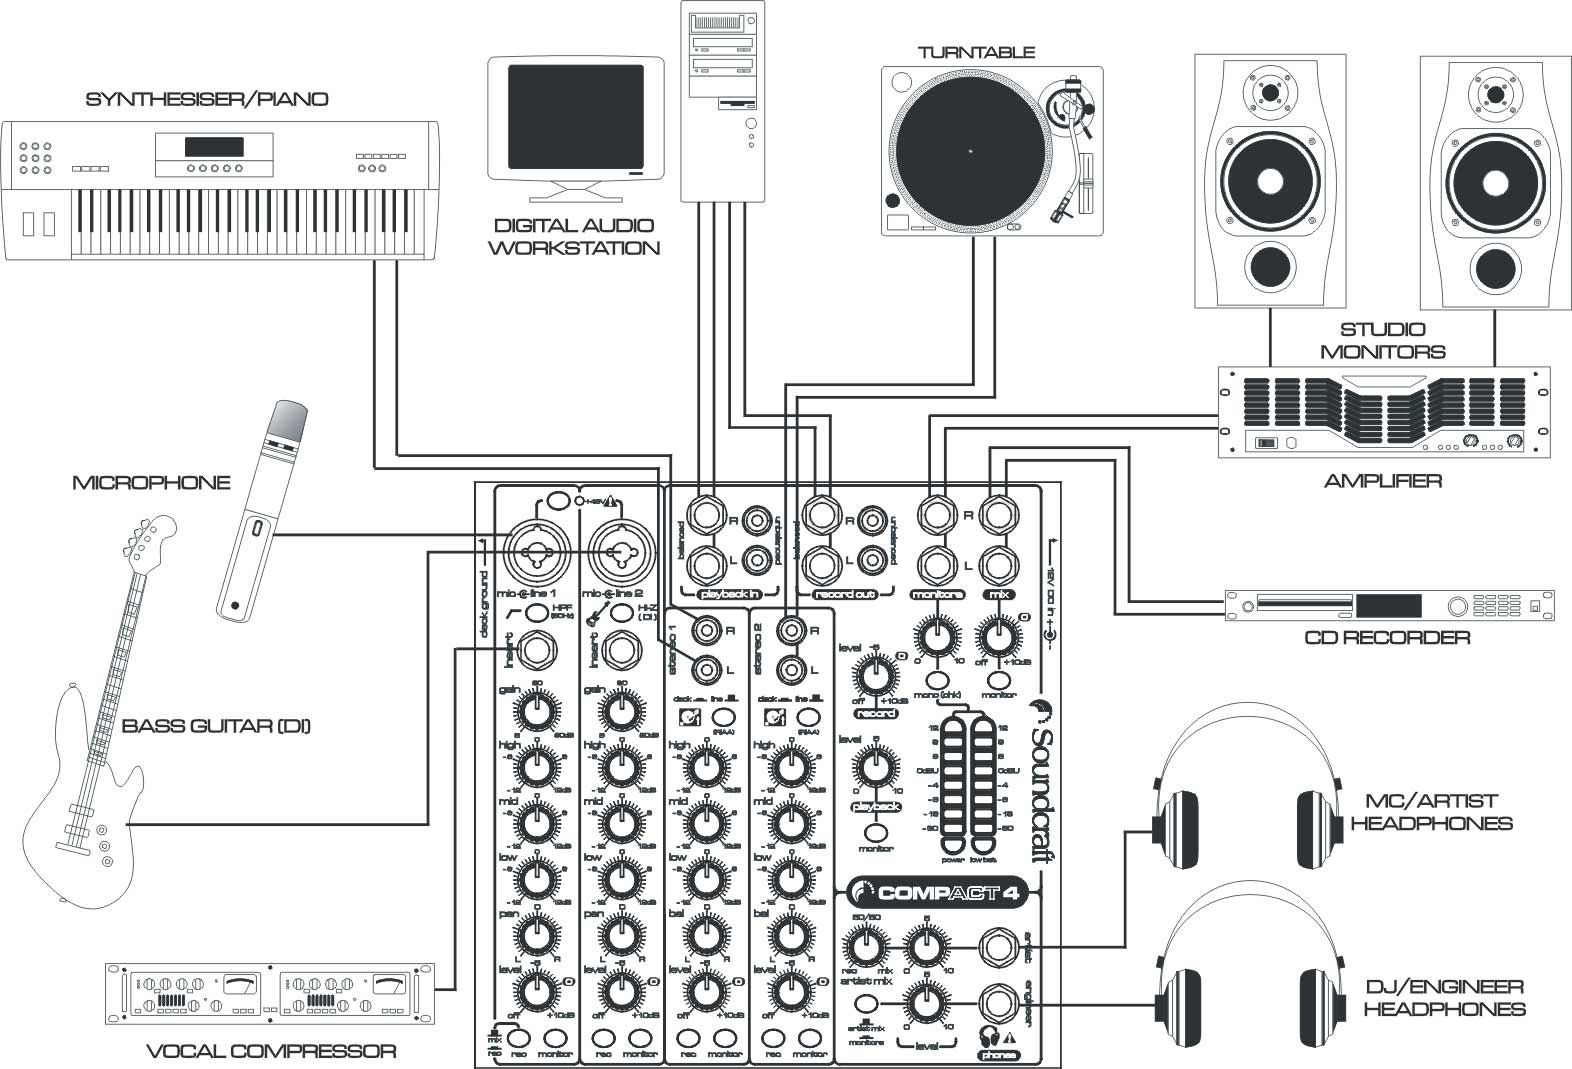 pa setup diagram how to wire a plug outlet soundcraft compact 4 set up recording studio